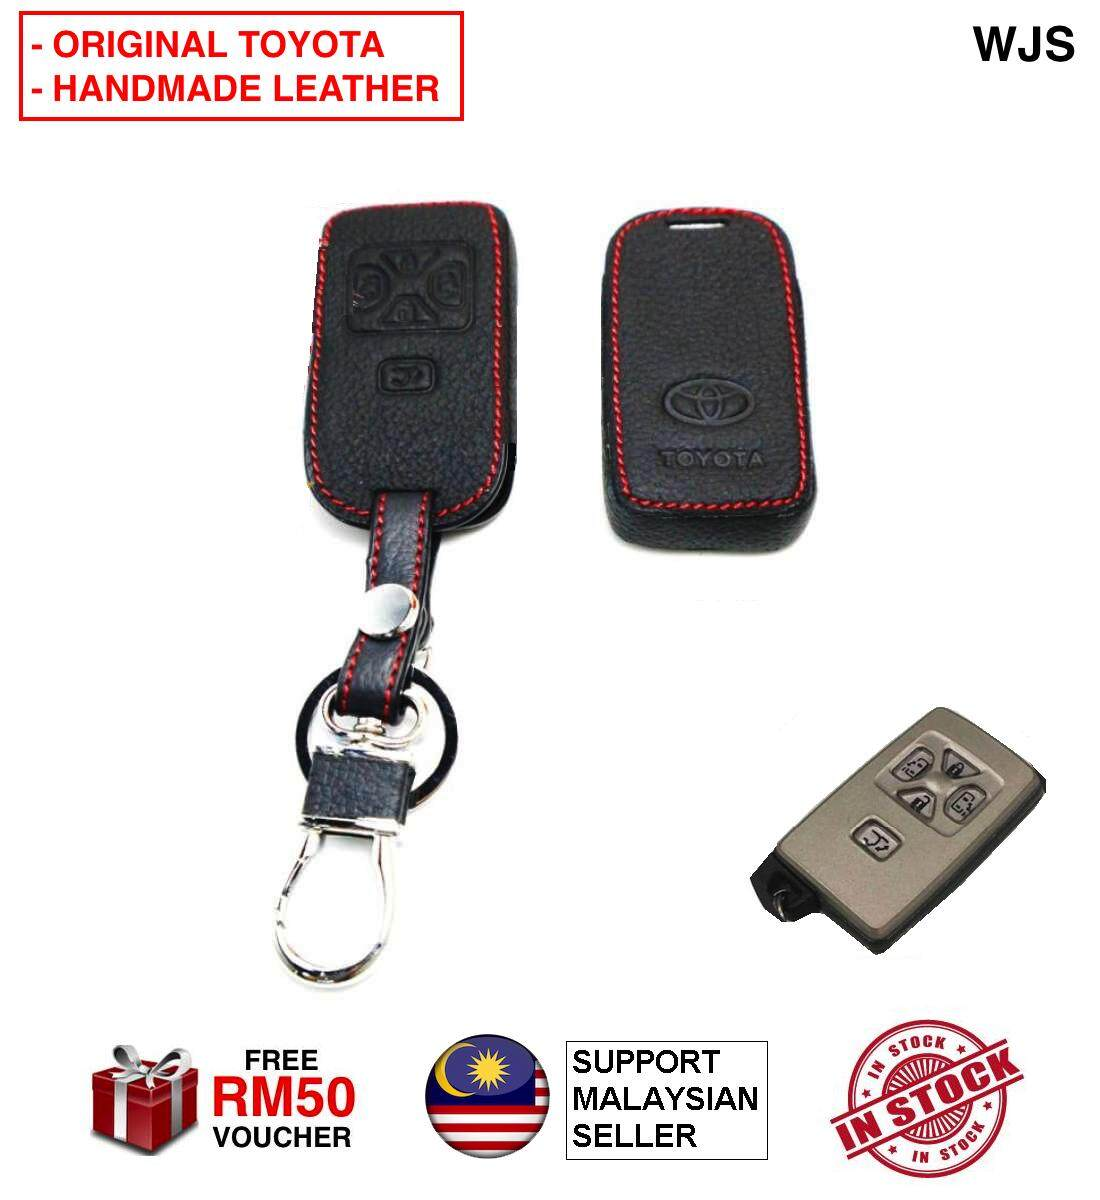 (ORIGINAL KEY LEATHER COVER) WJS Stainless Steel Toyota Estima Vellfire Alphard 2006-2012 Smart Key Leather Key Cover Case Keyless Remote Casing BLACK WITH STRAP [FREE RM 50 VOUCHER]